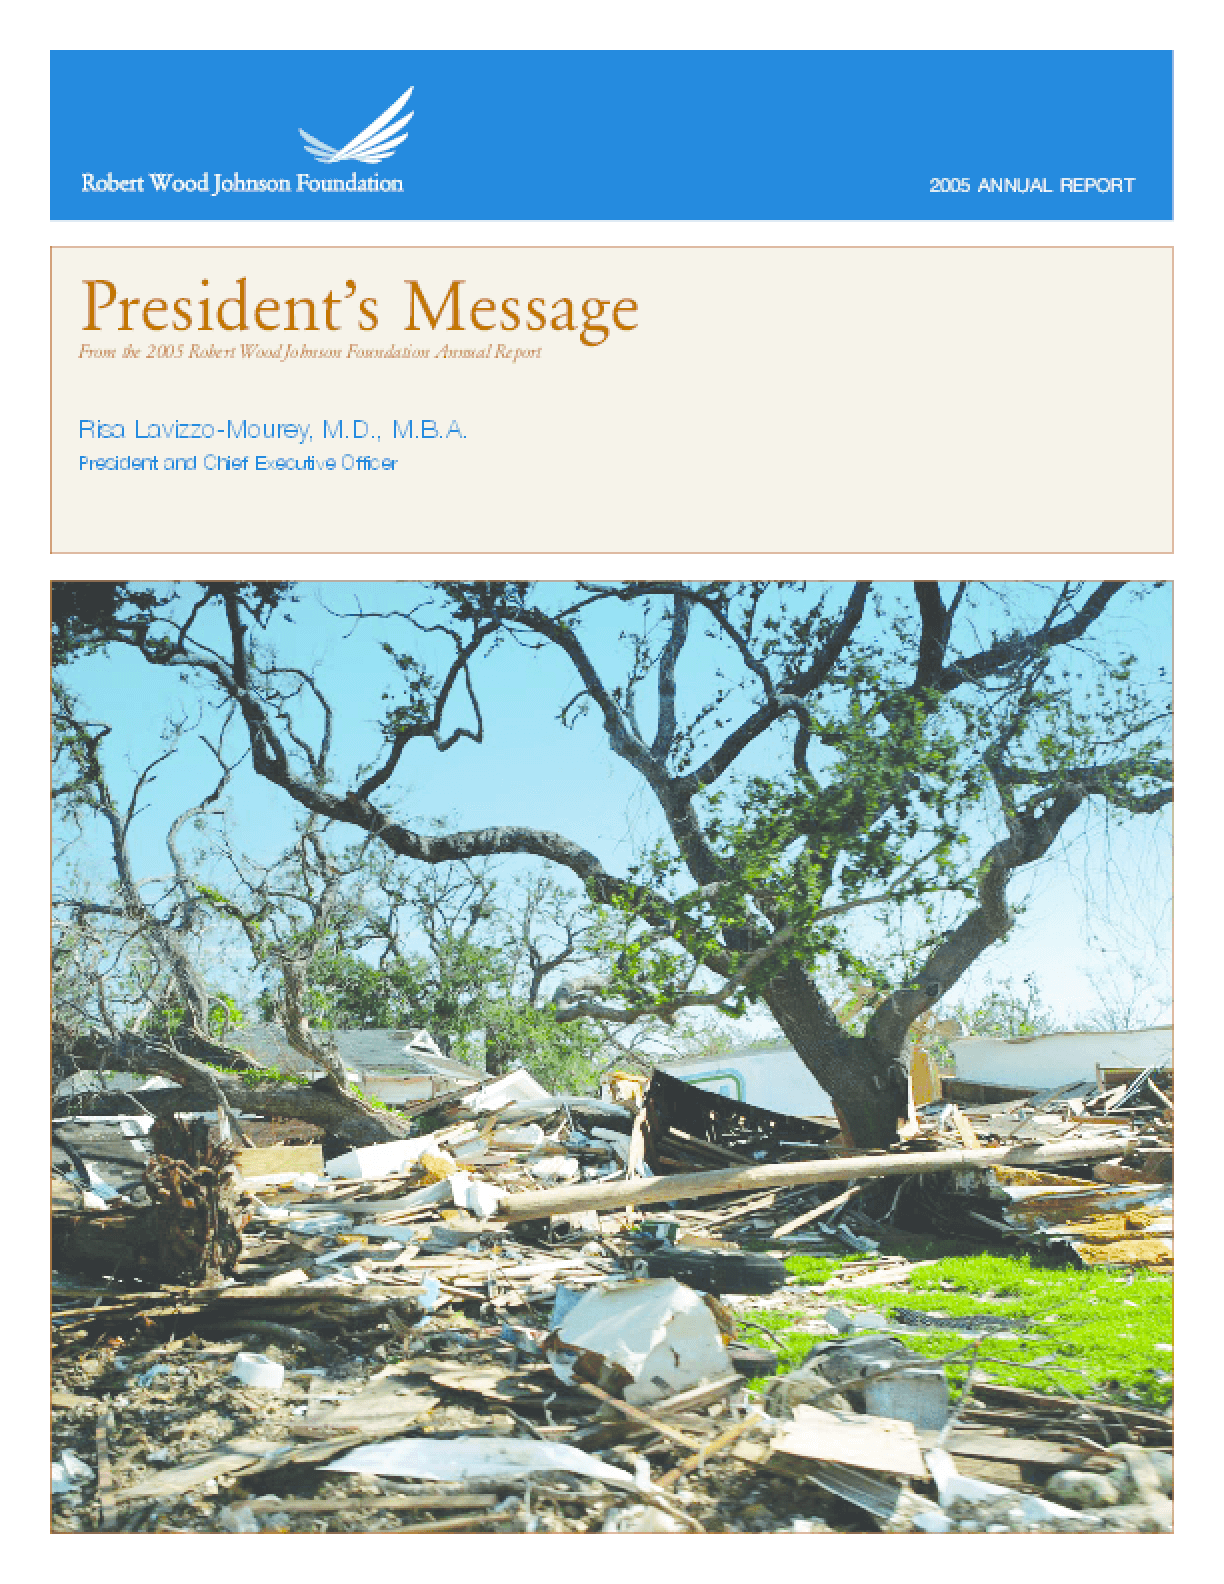 Robert Wood Johnson Foundation - 2005 Annual Report: A Tree in the Storm -- Philanthropy and the Health of the Public